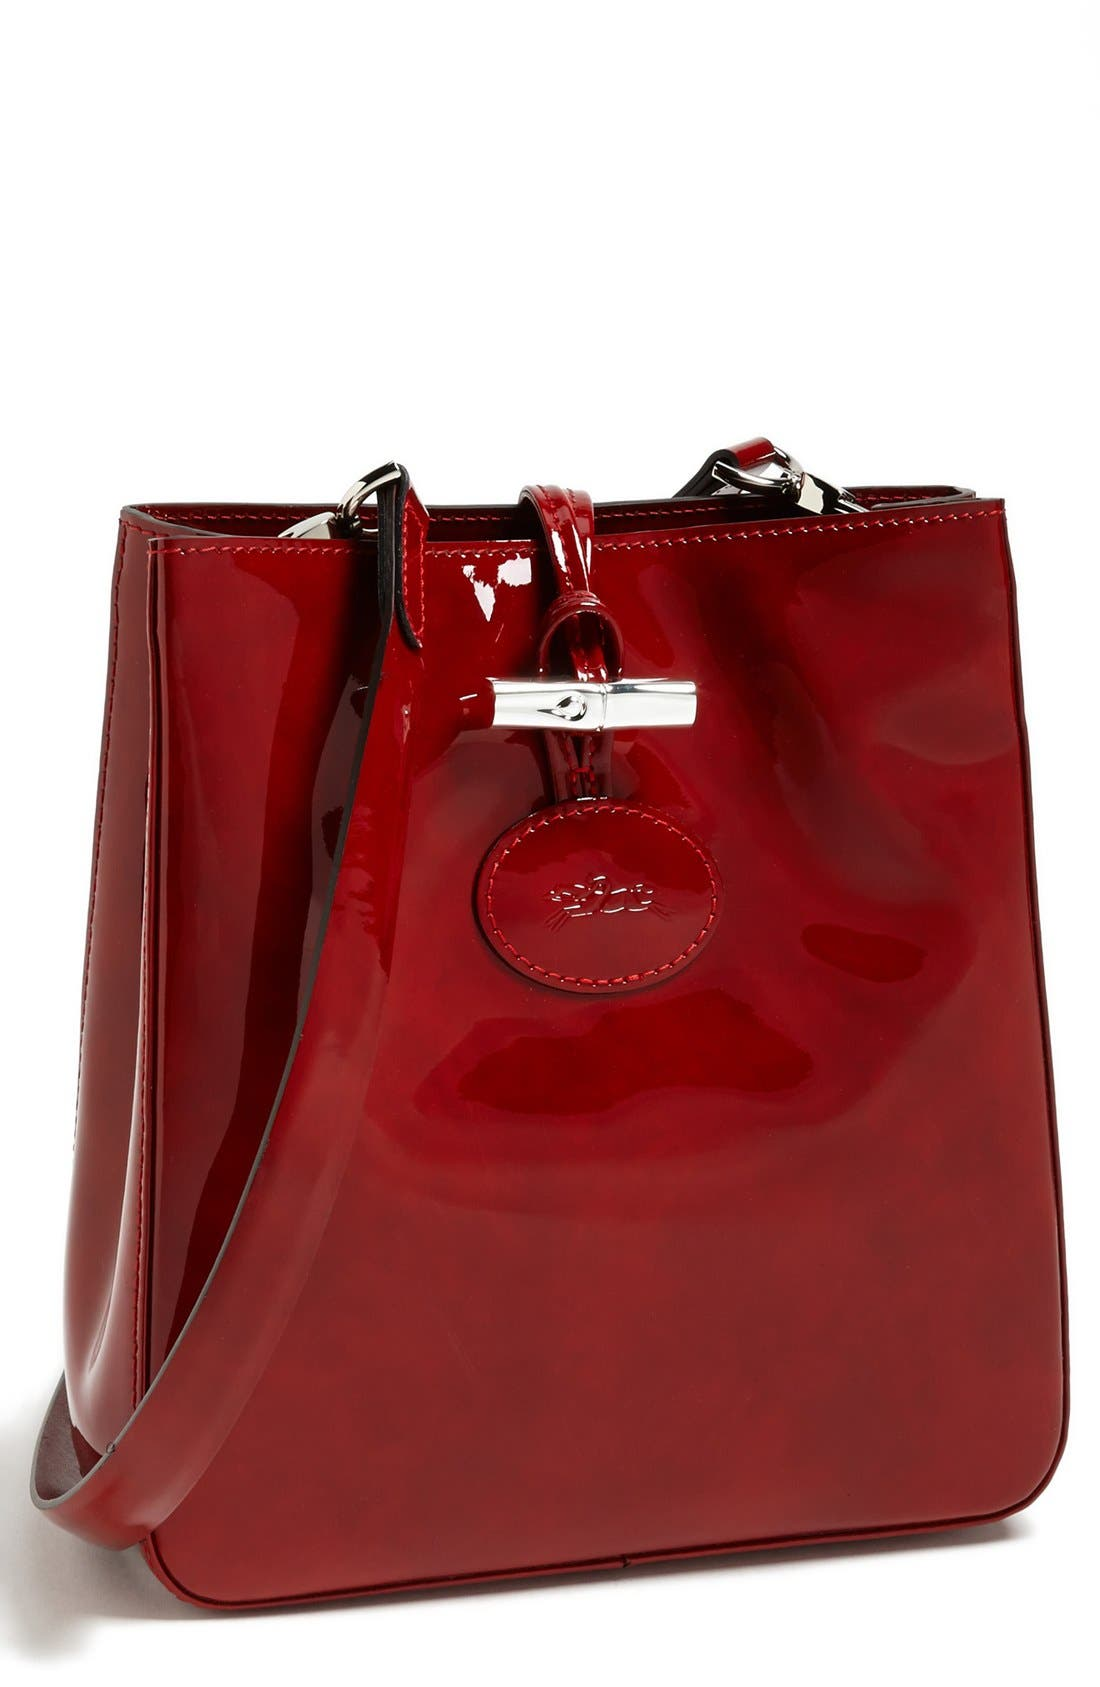 Alternate Image 1 Selected - Longchamp 'Roseau Box' Crossbody Bag